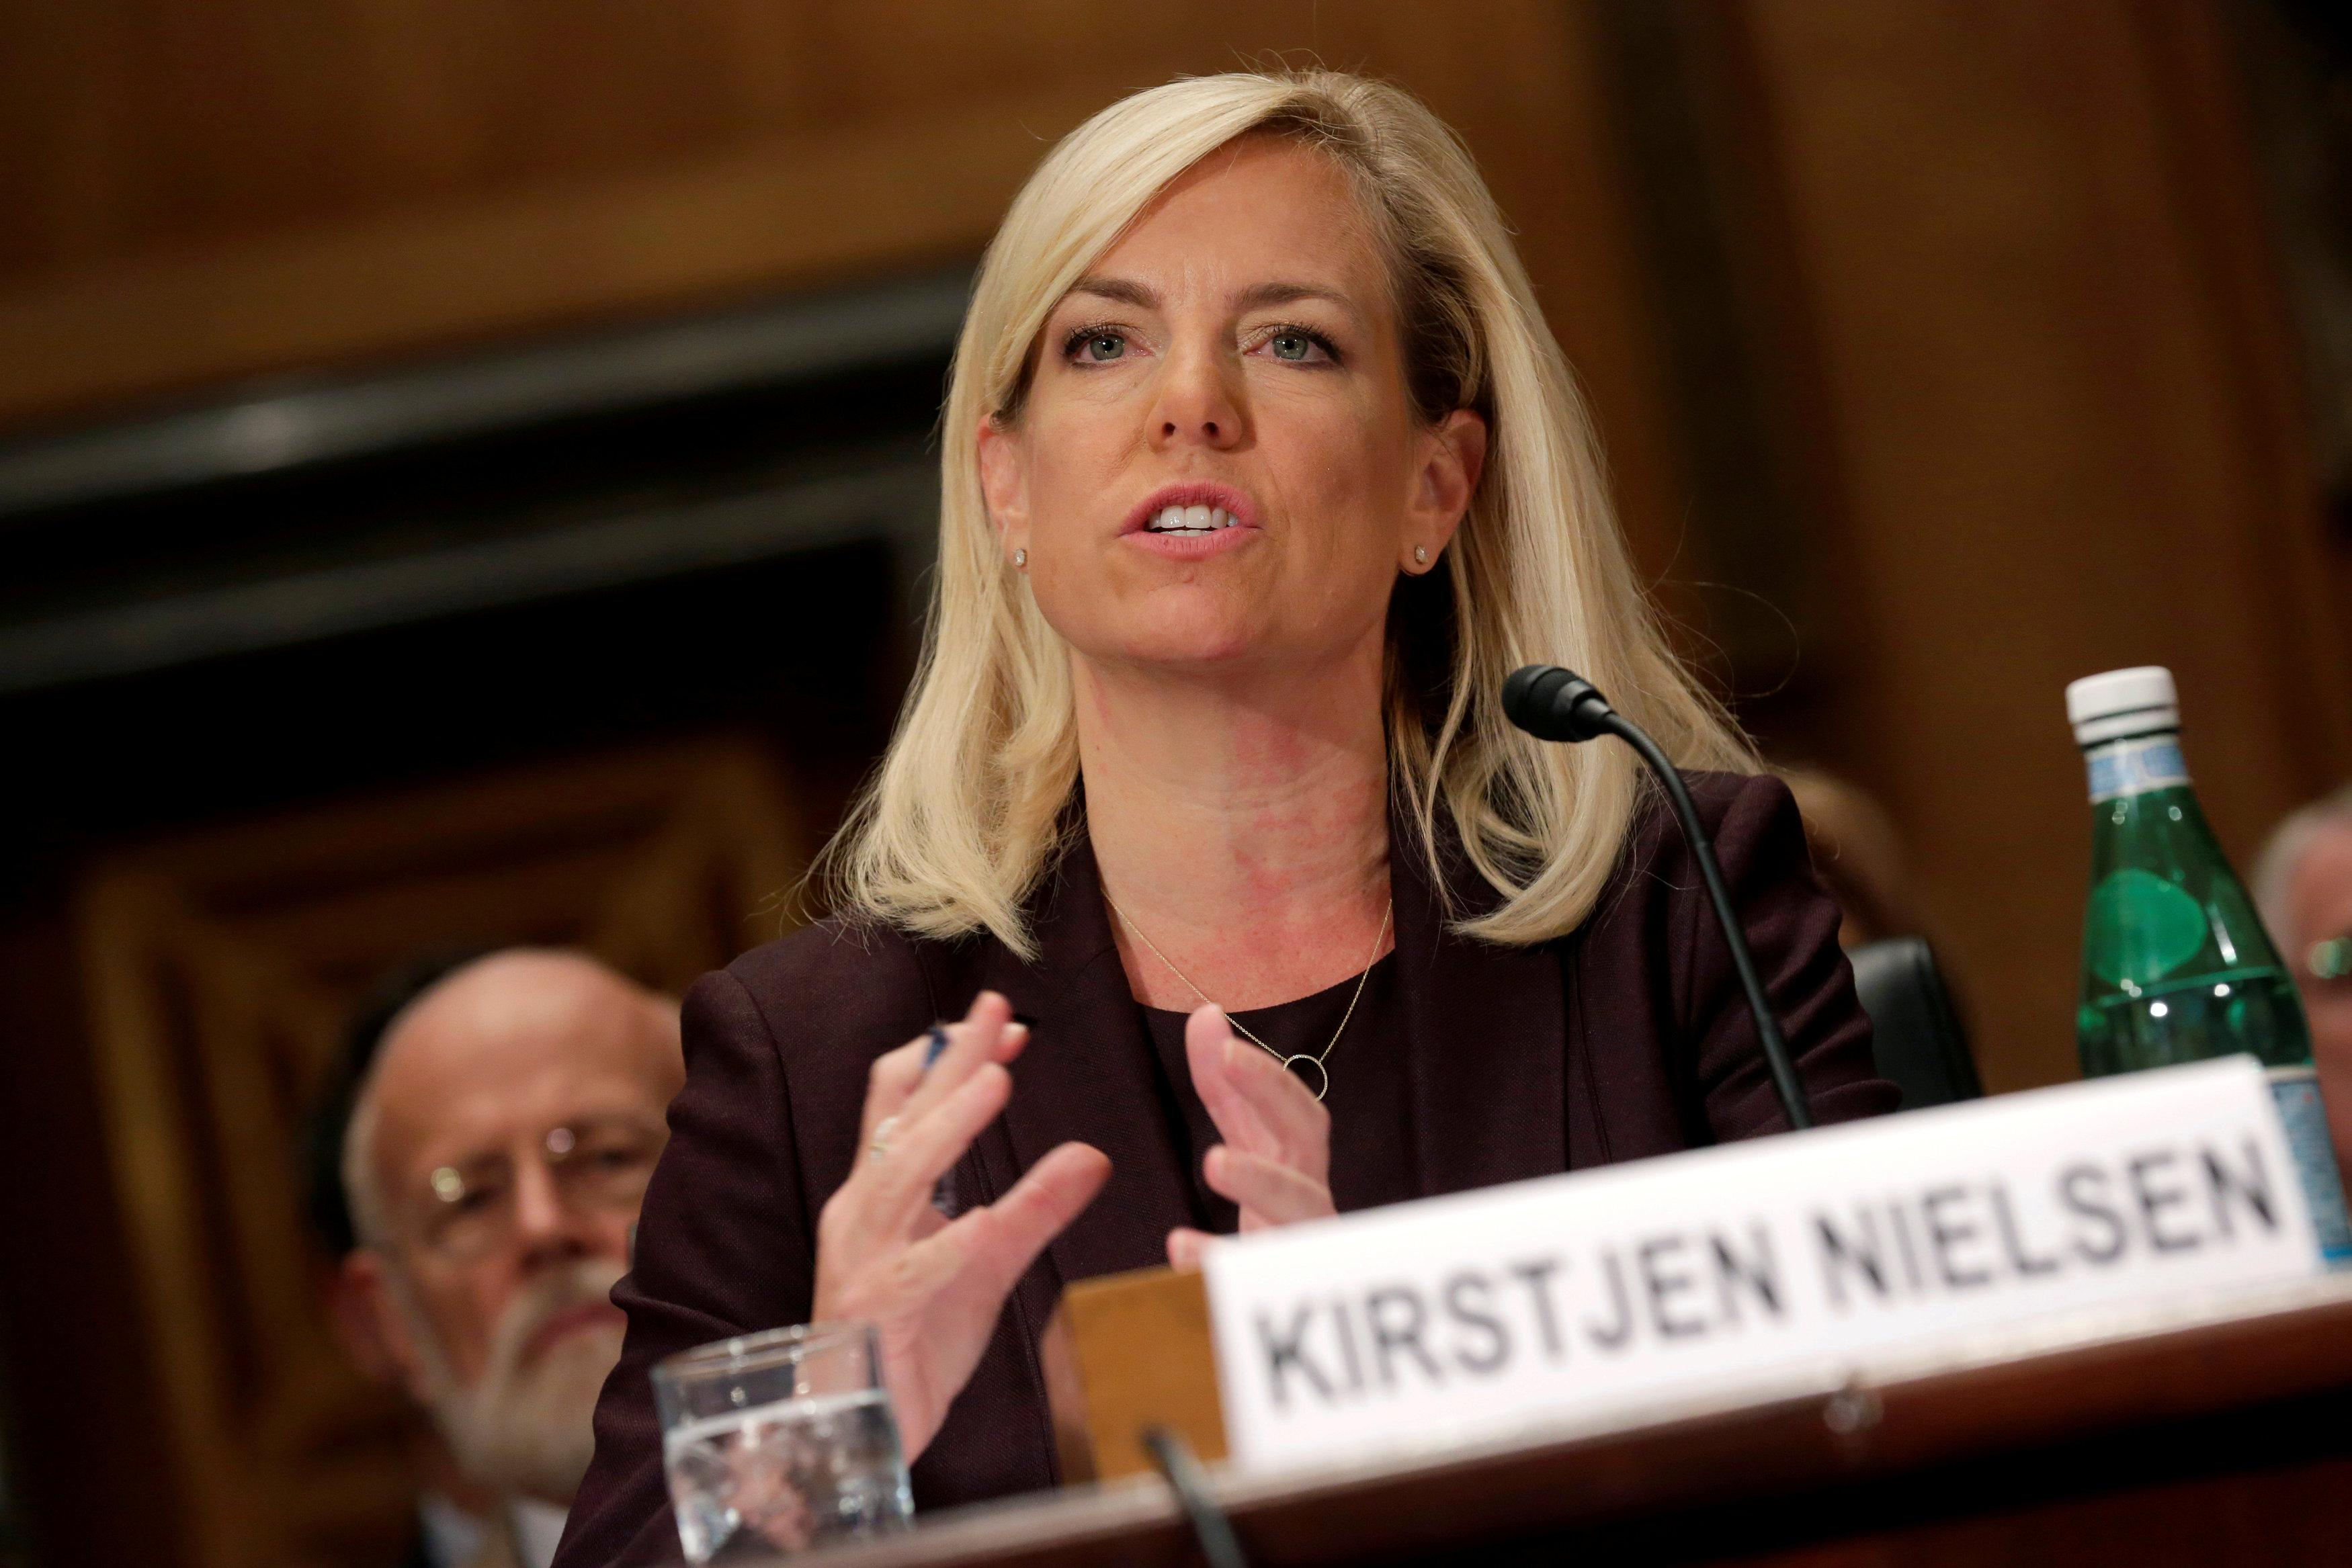 Kirstjen Nielsen testifies to the Senate Homeland Security and Governmental Affairs Committee on her nomination to be secretary of the Department of Homeland Security (DHS) in Washington, U.S. on November 8, 2017.   Joshua Roberts